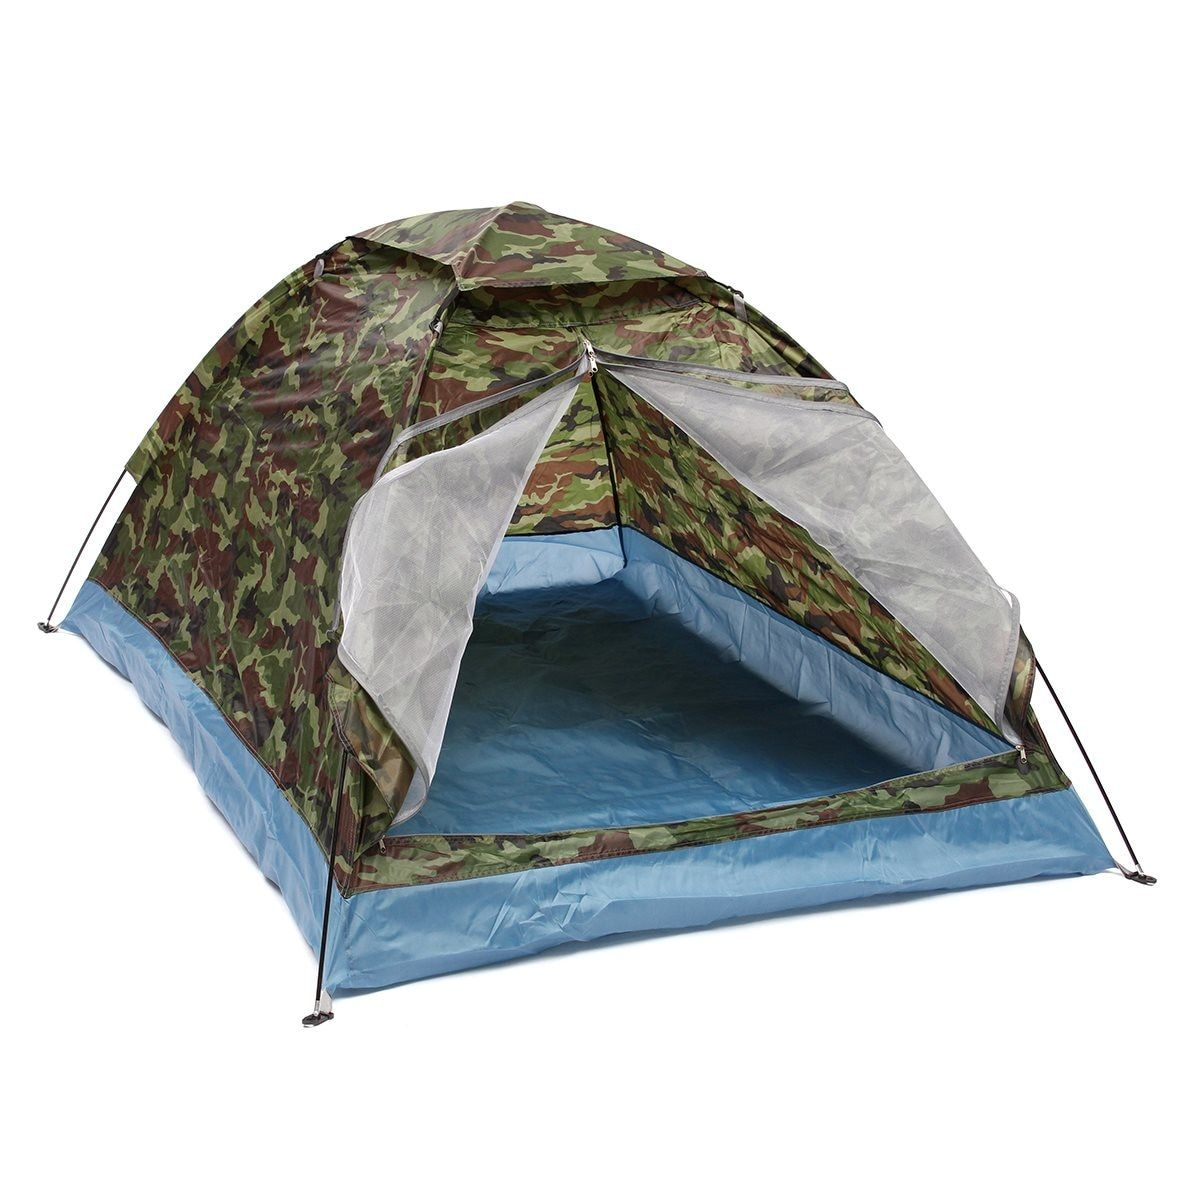 Outdoor 200*140*110cm Oxford cloth PU waterproof coating 4 seasons 2 people single layer Camouflage camping <font><b>hiking</b></font> tent